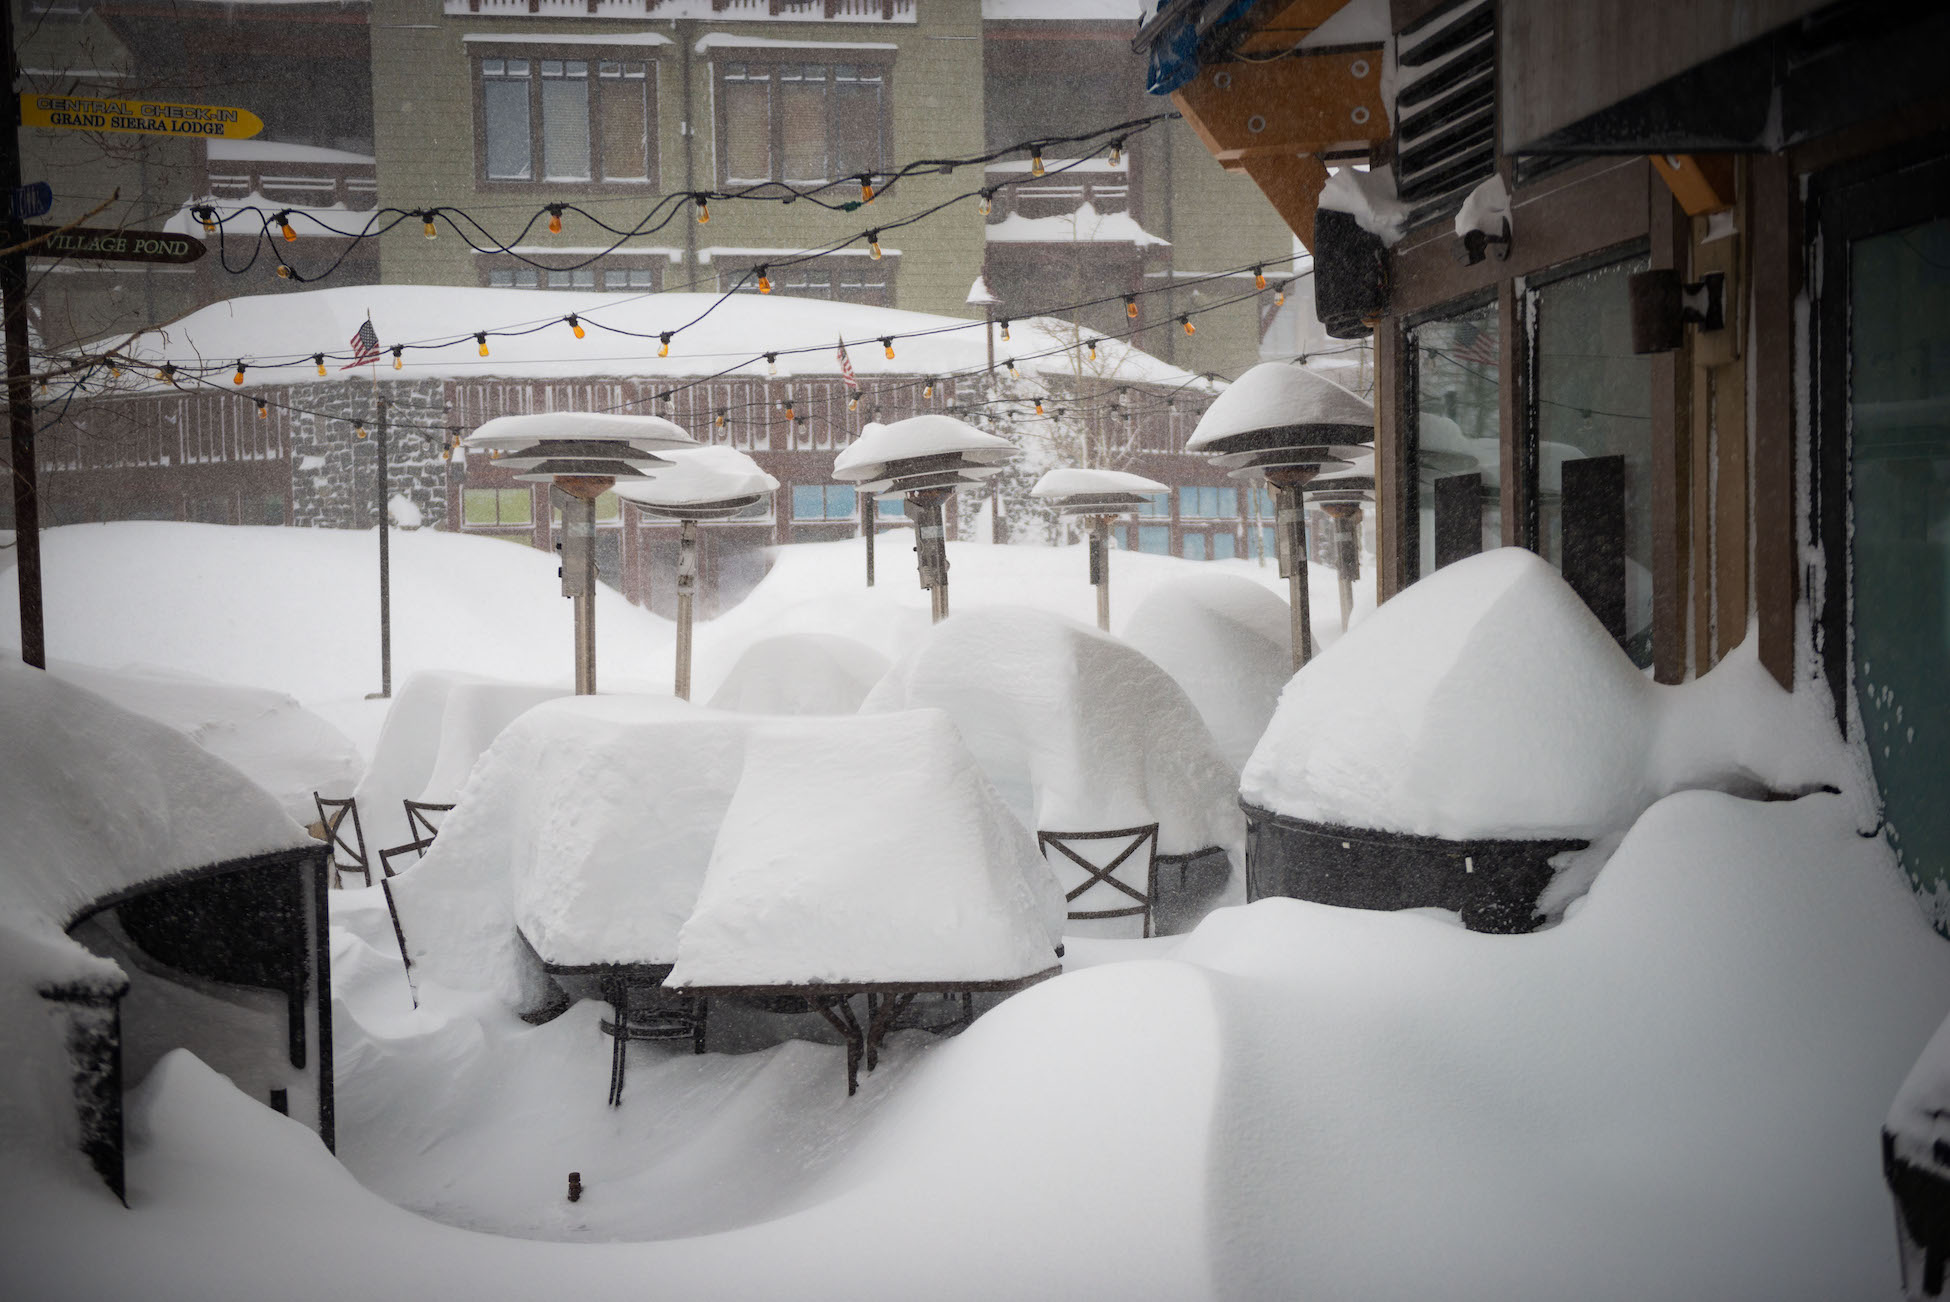 Photo: snow piled on tables